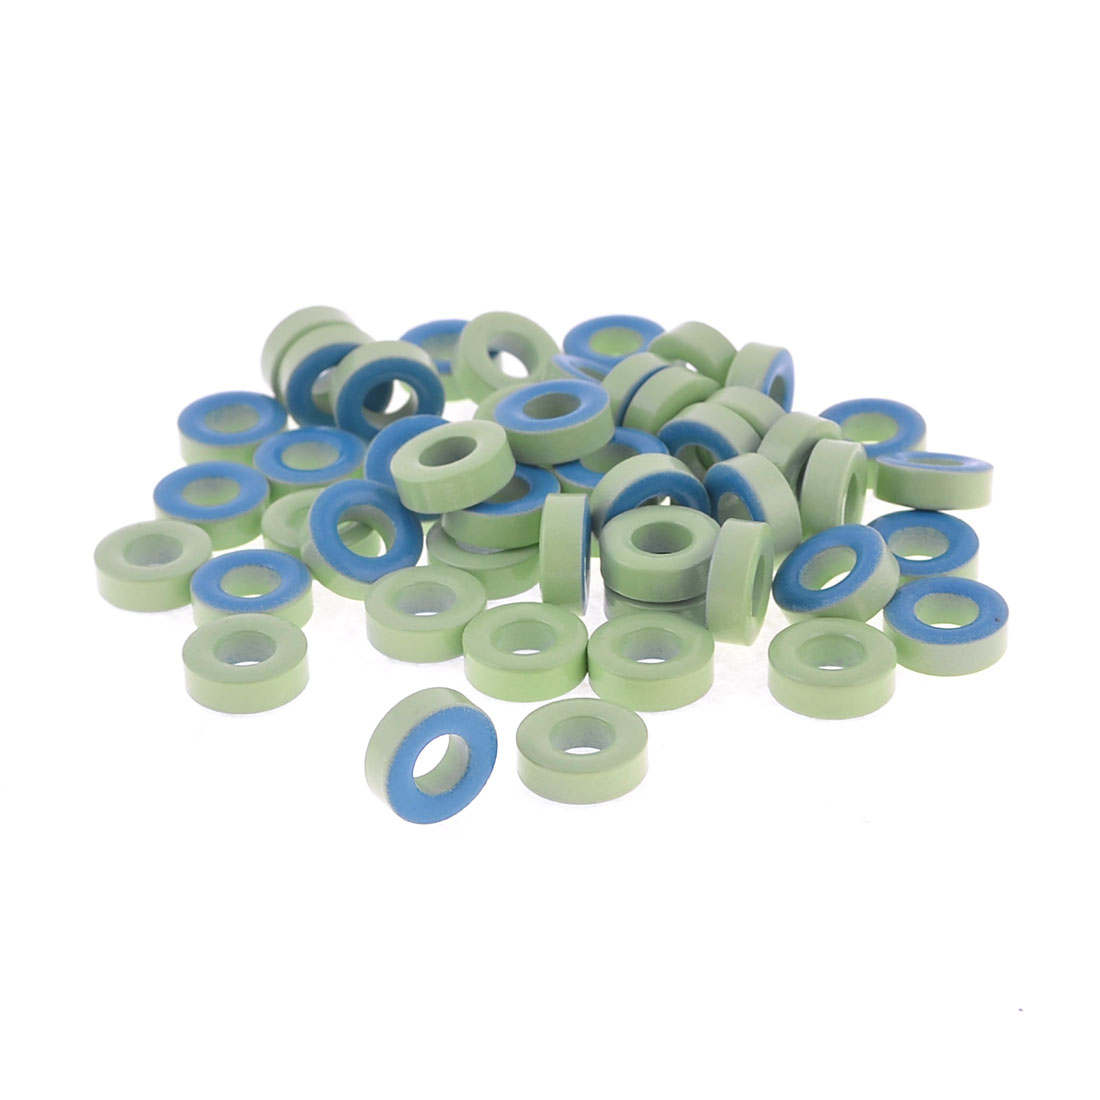 50Pcs Pale Green Blue Iron Core Power Inductor Ferrite Rings AT44-52